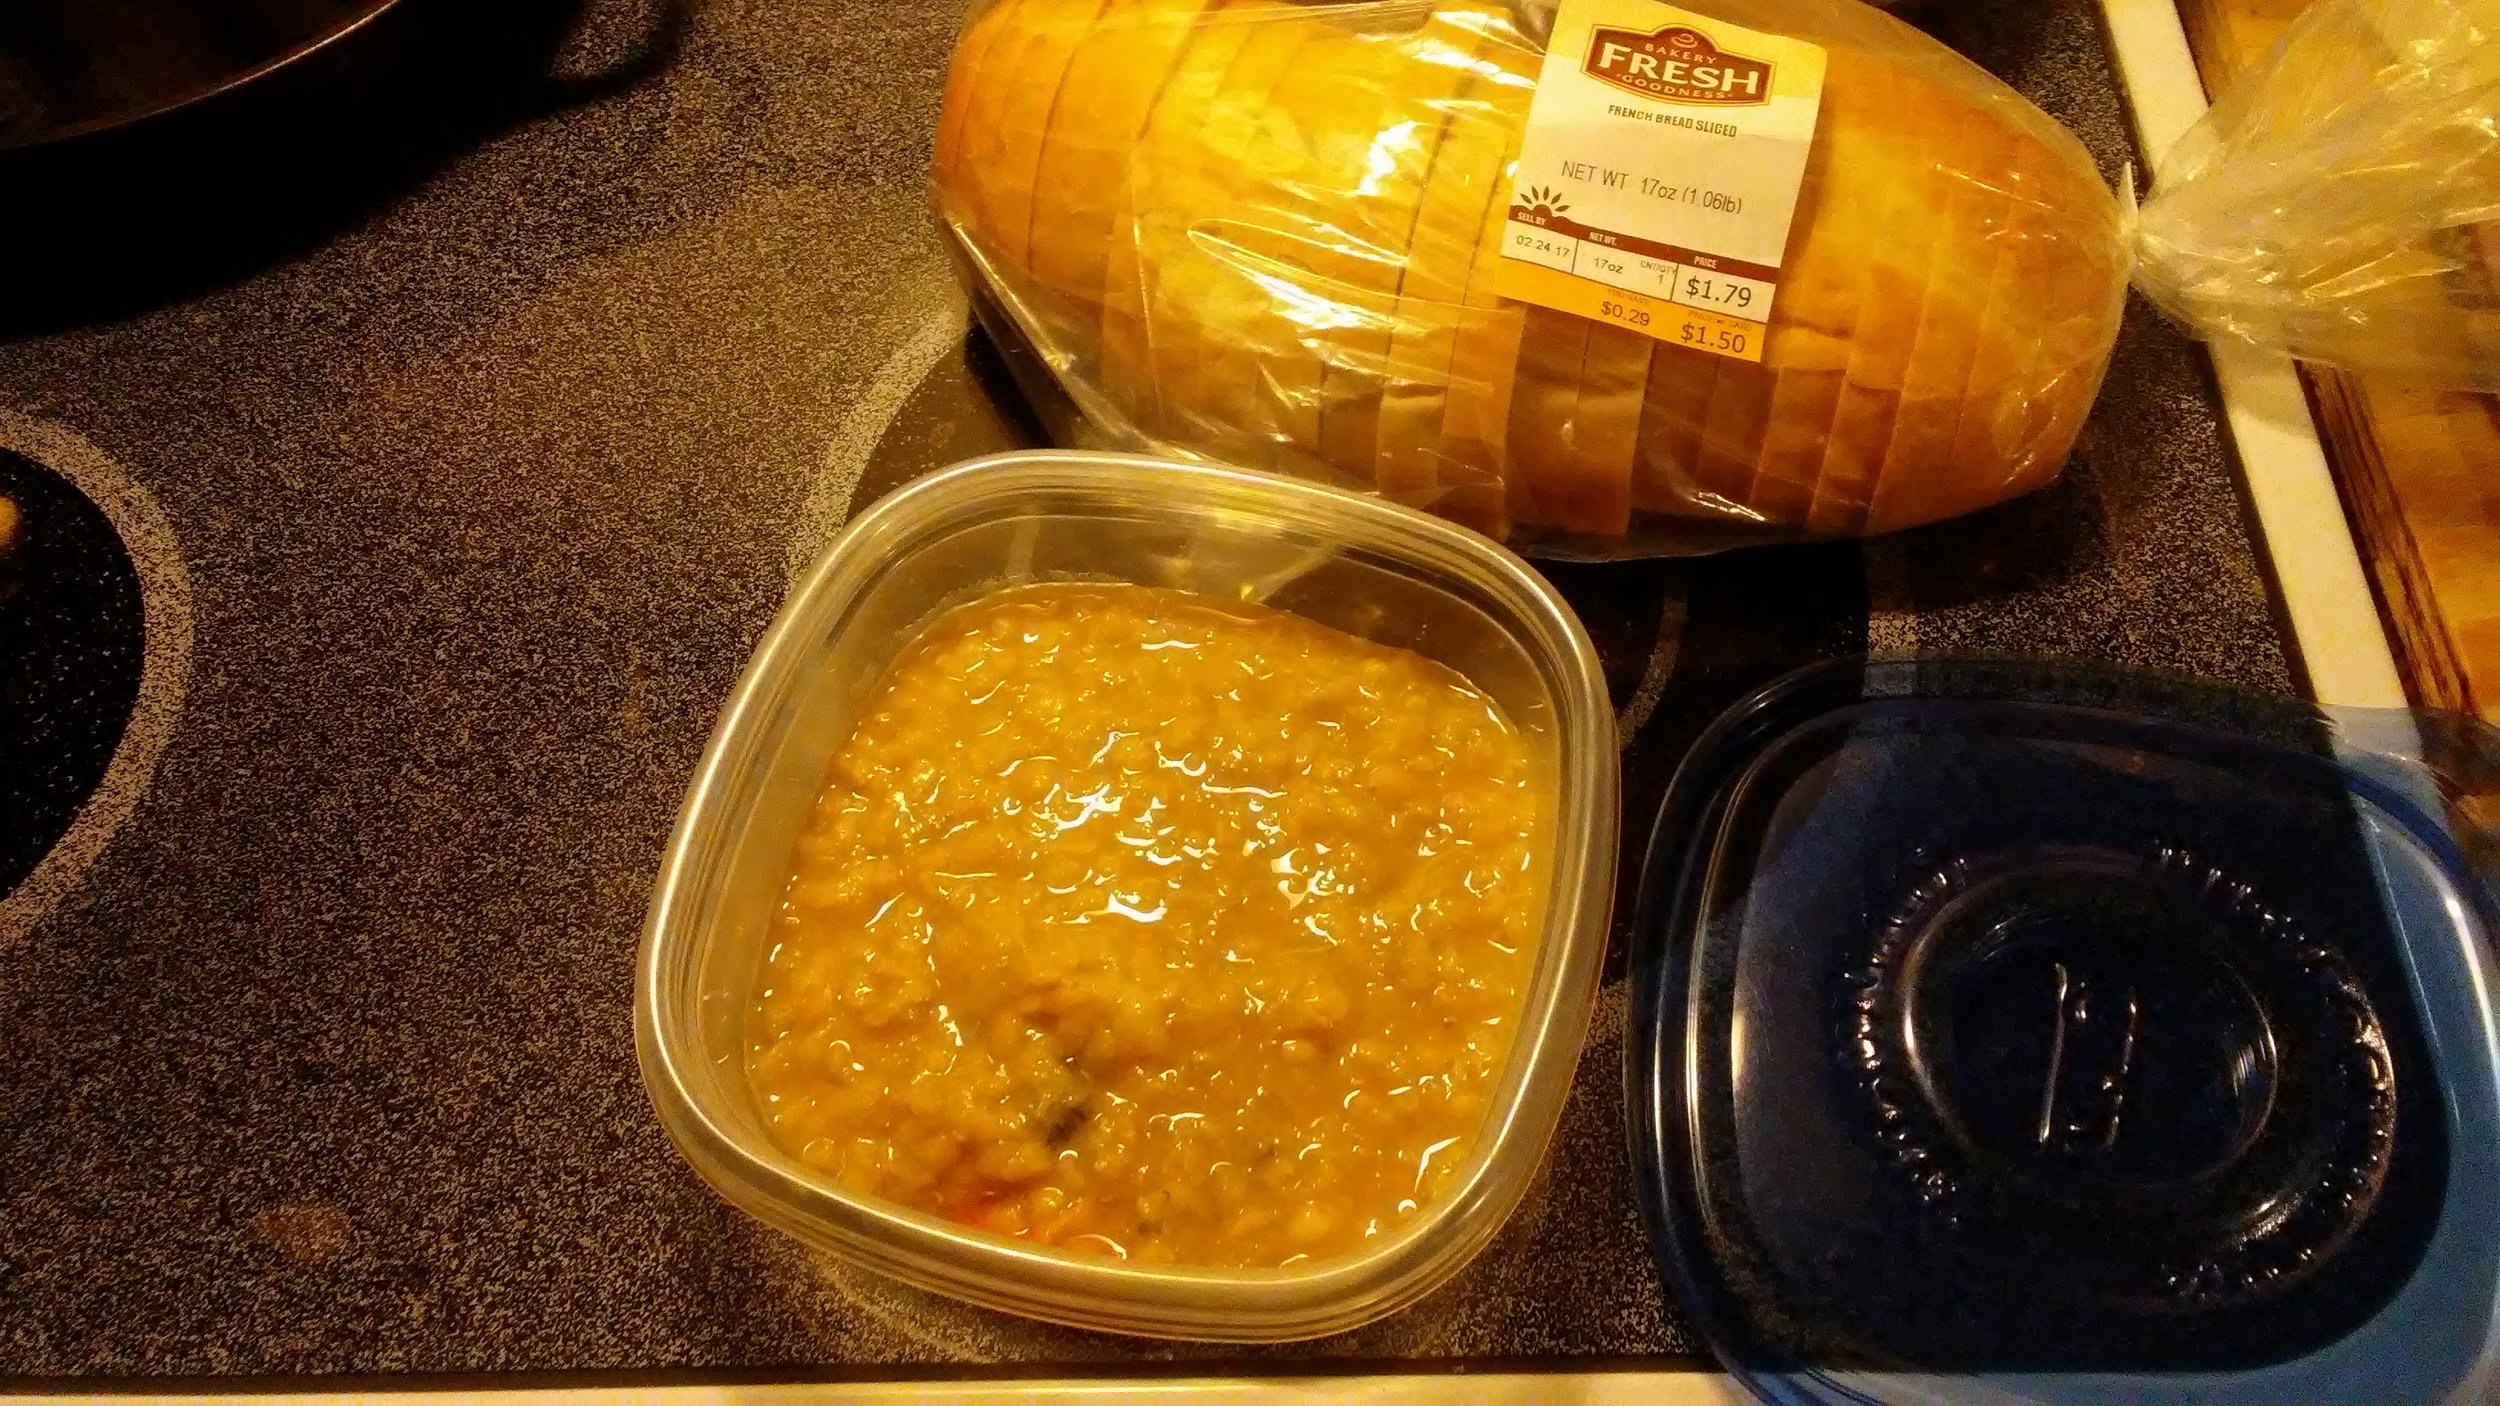 Lentil and Kale Soup with bread--so good! Fun to share!